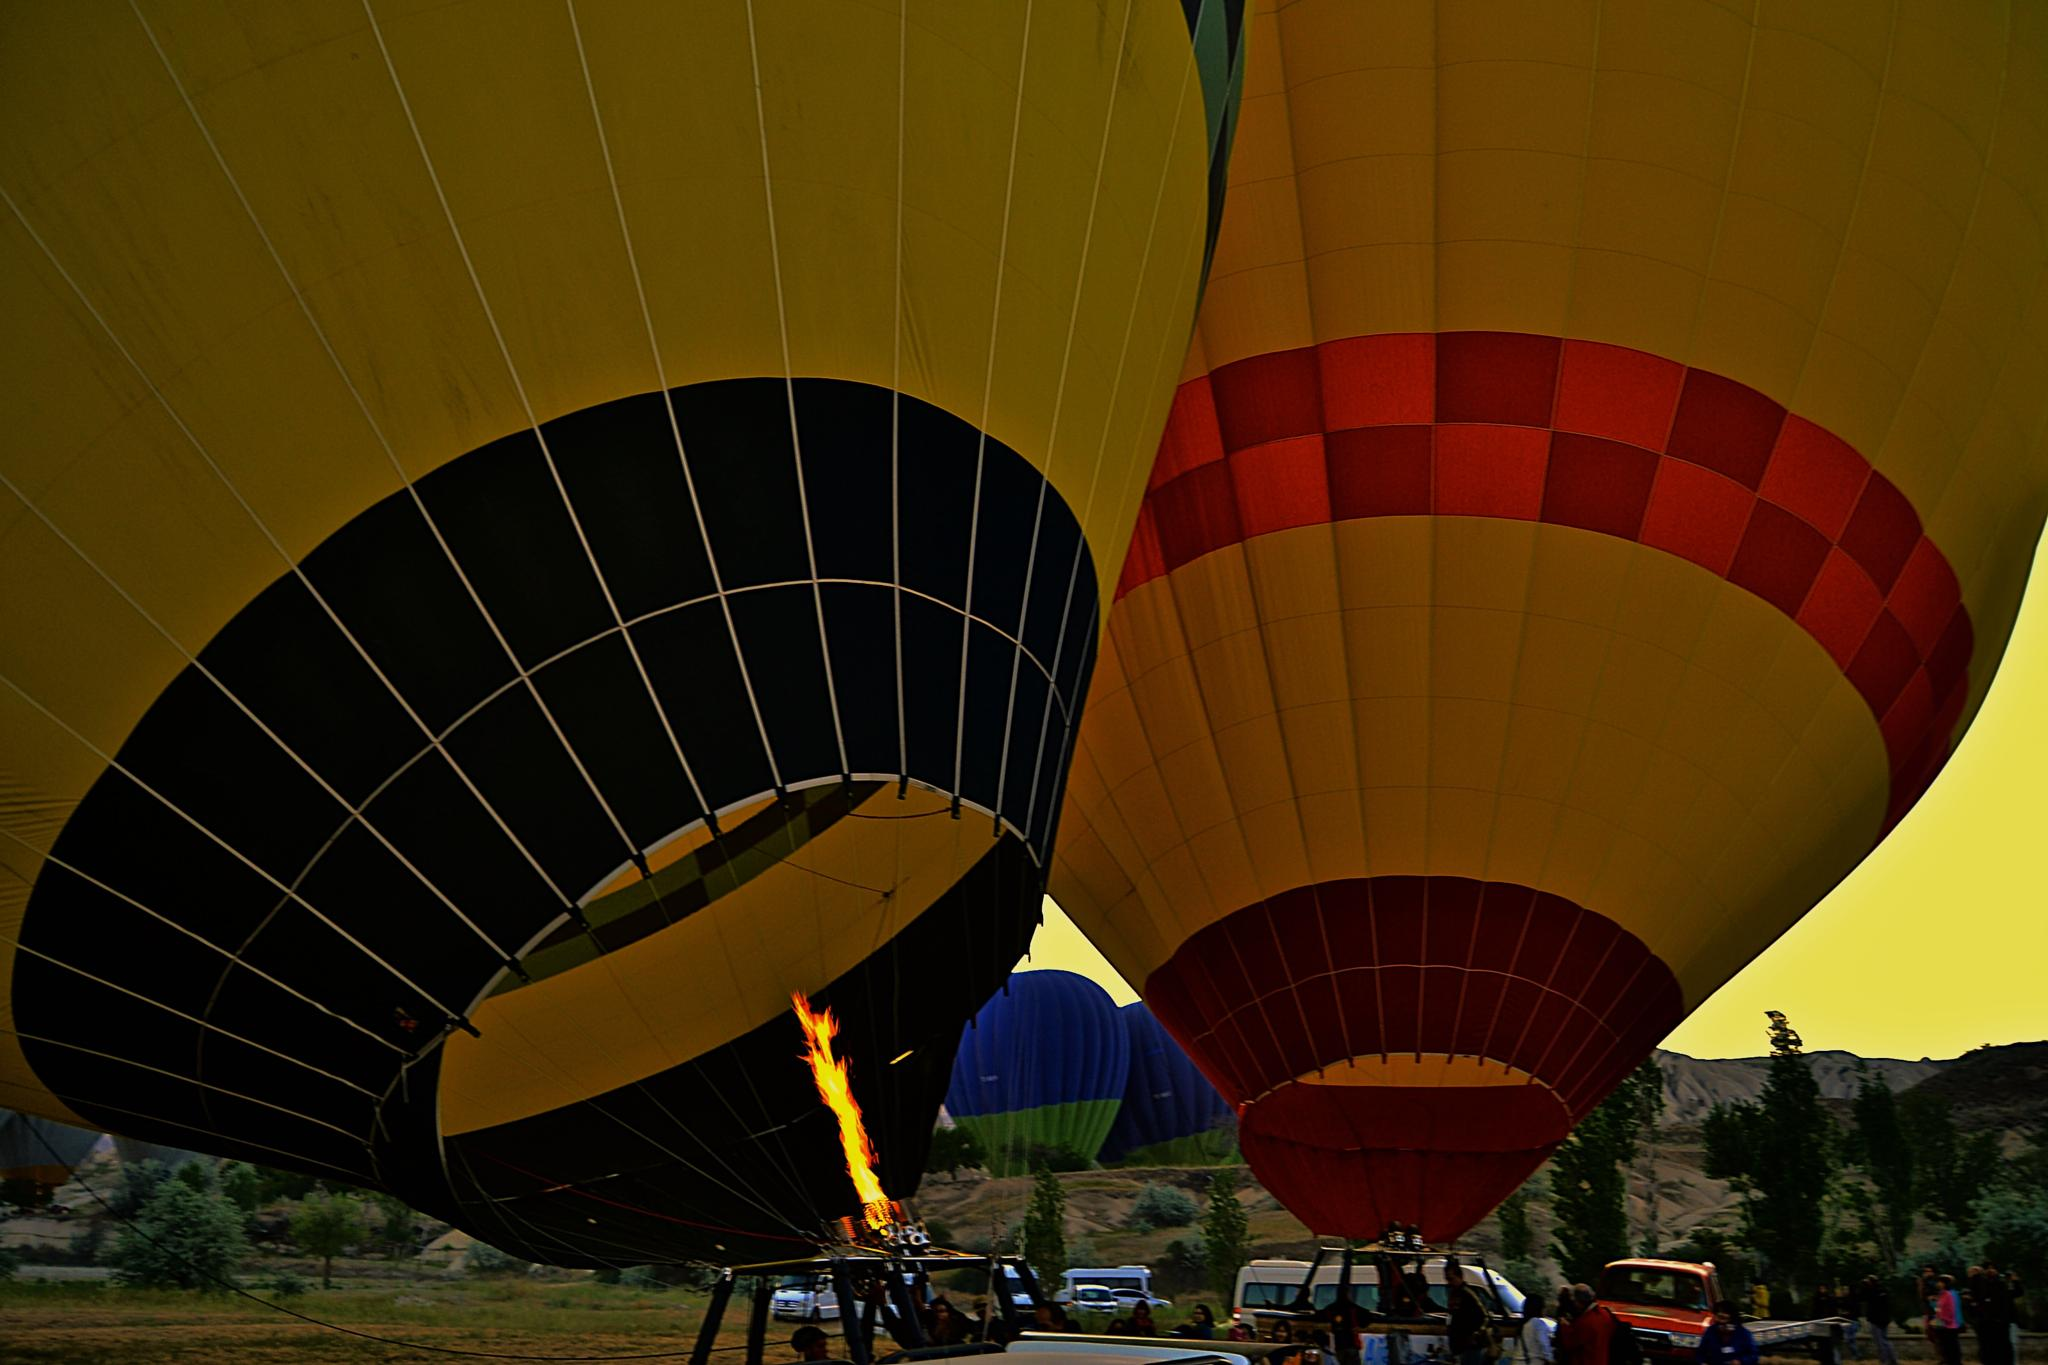 Up, Up and Away by ramuel.derige